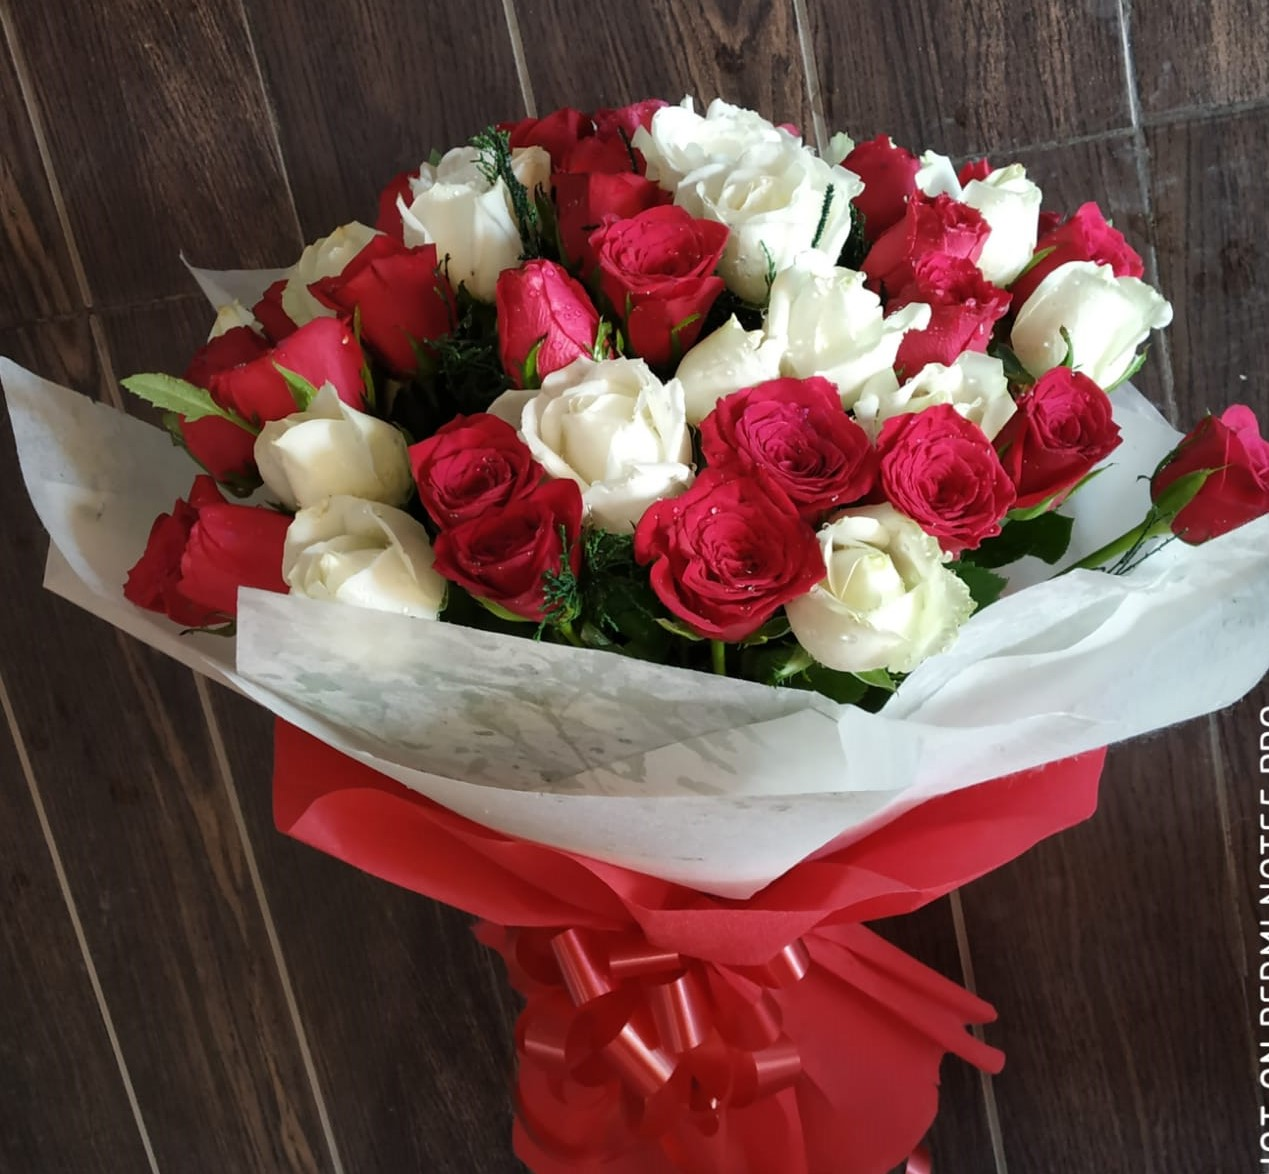 Flowers Delivery in Sector 43 GurgaonRed & White Roses in Duble Layer Packing